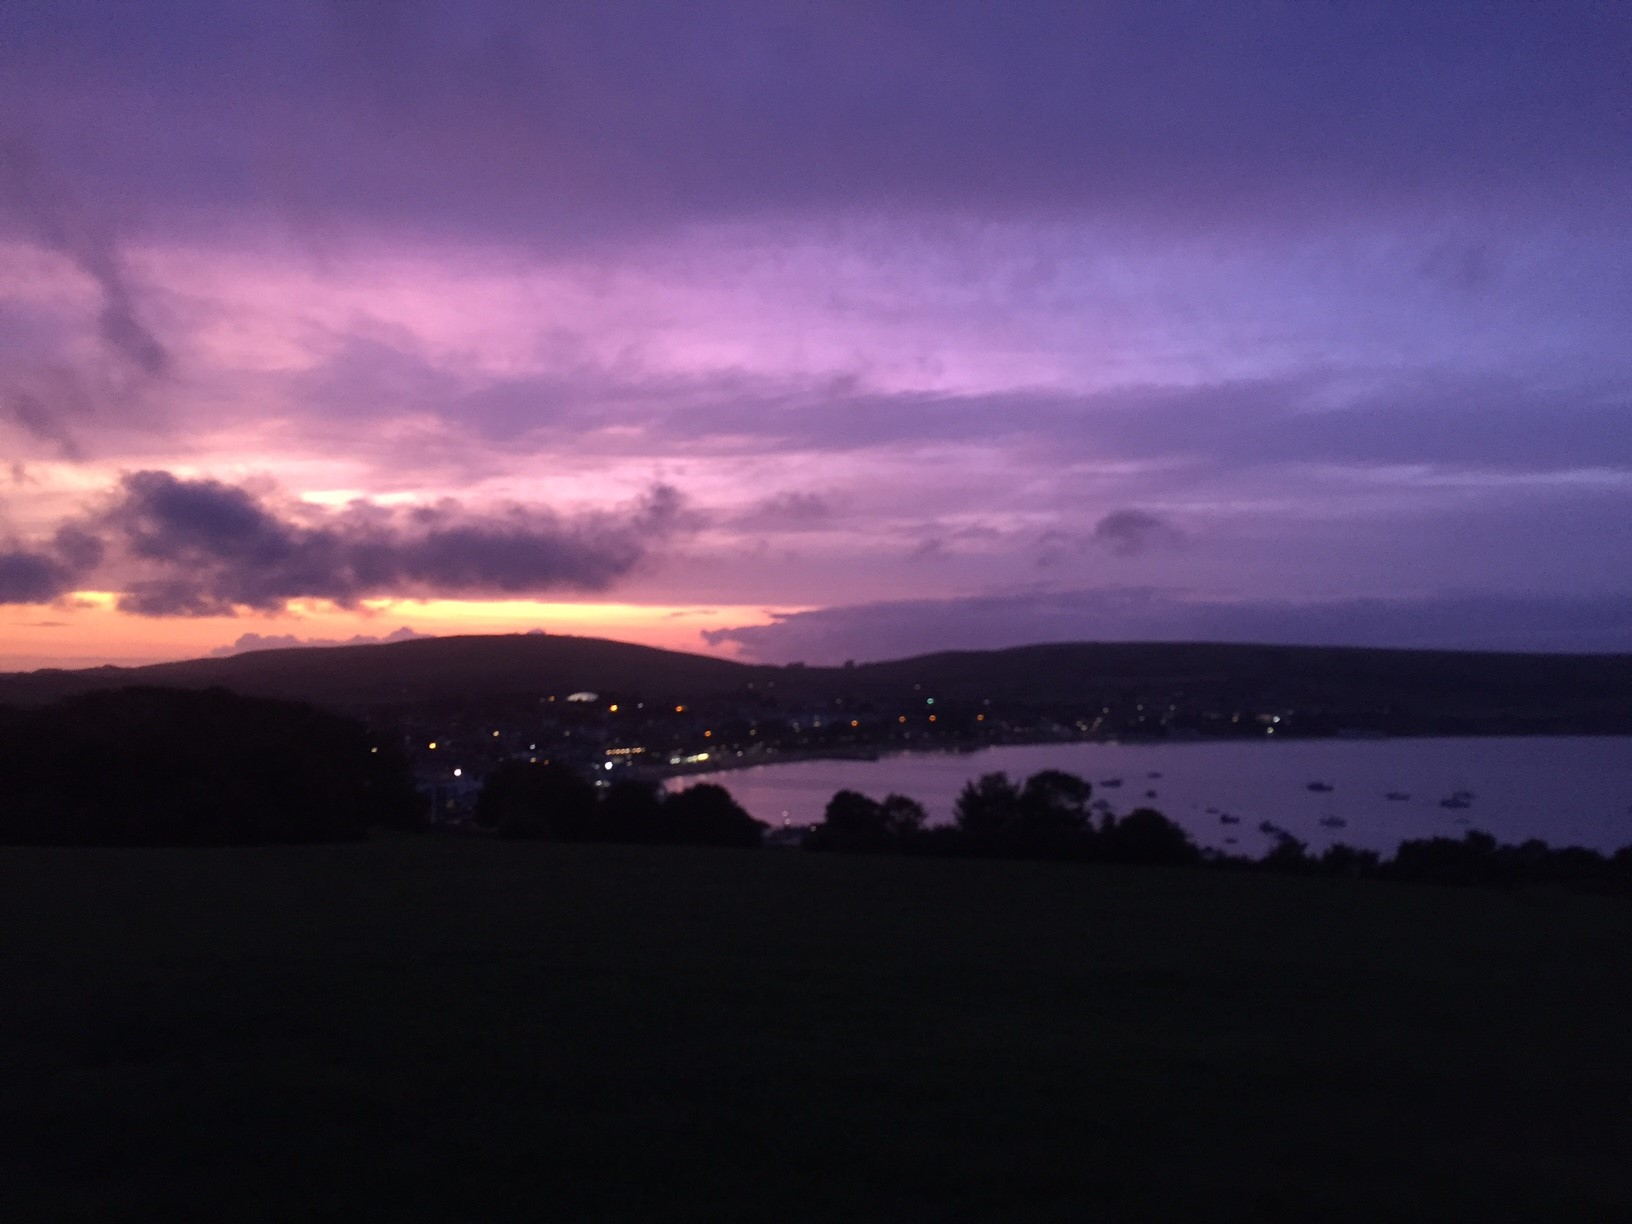 After my hard days training in Weymouth it was nice to go home, take a walk and reflect on the day gone by. When met with sunsets like this it really makes me appreciate where I live.